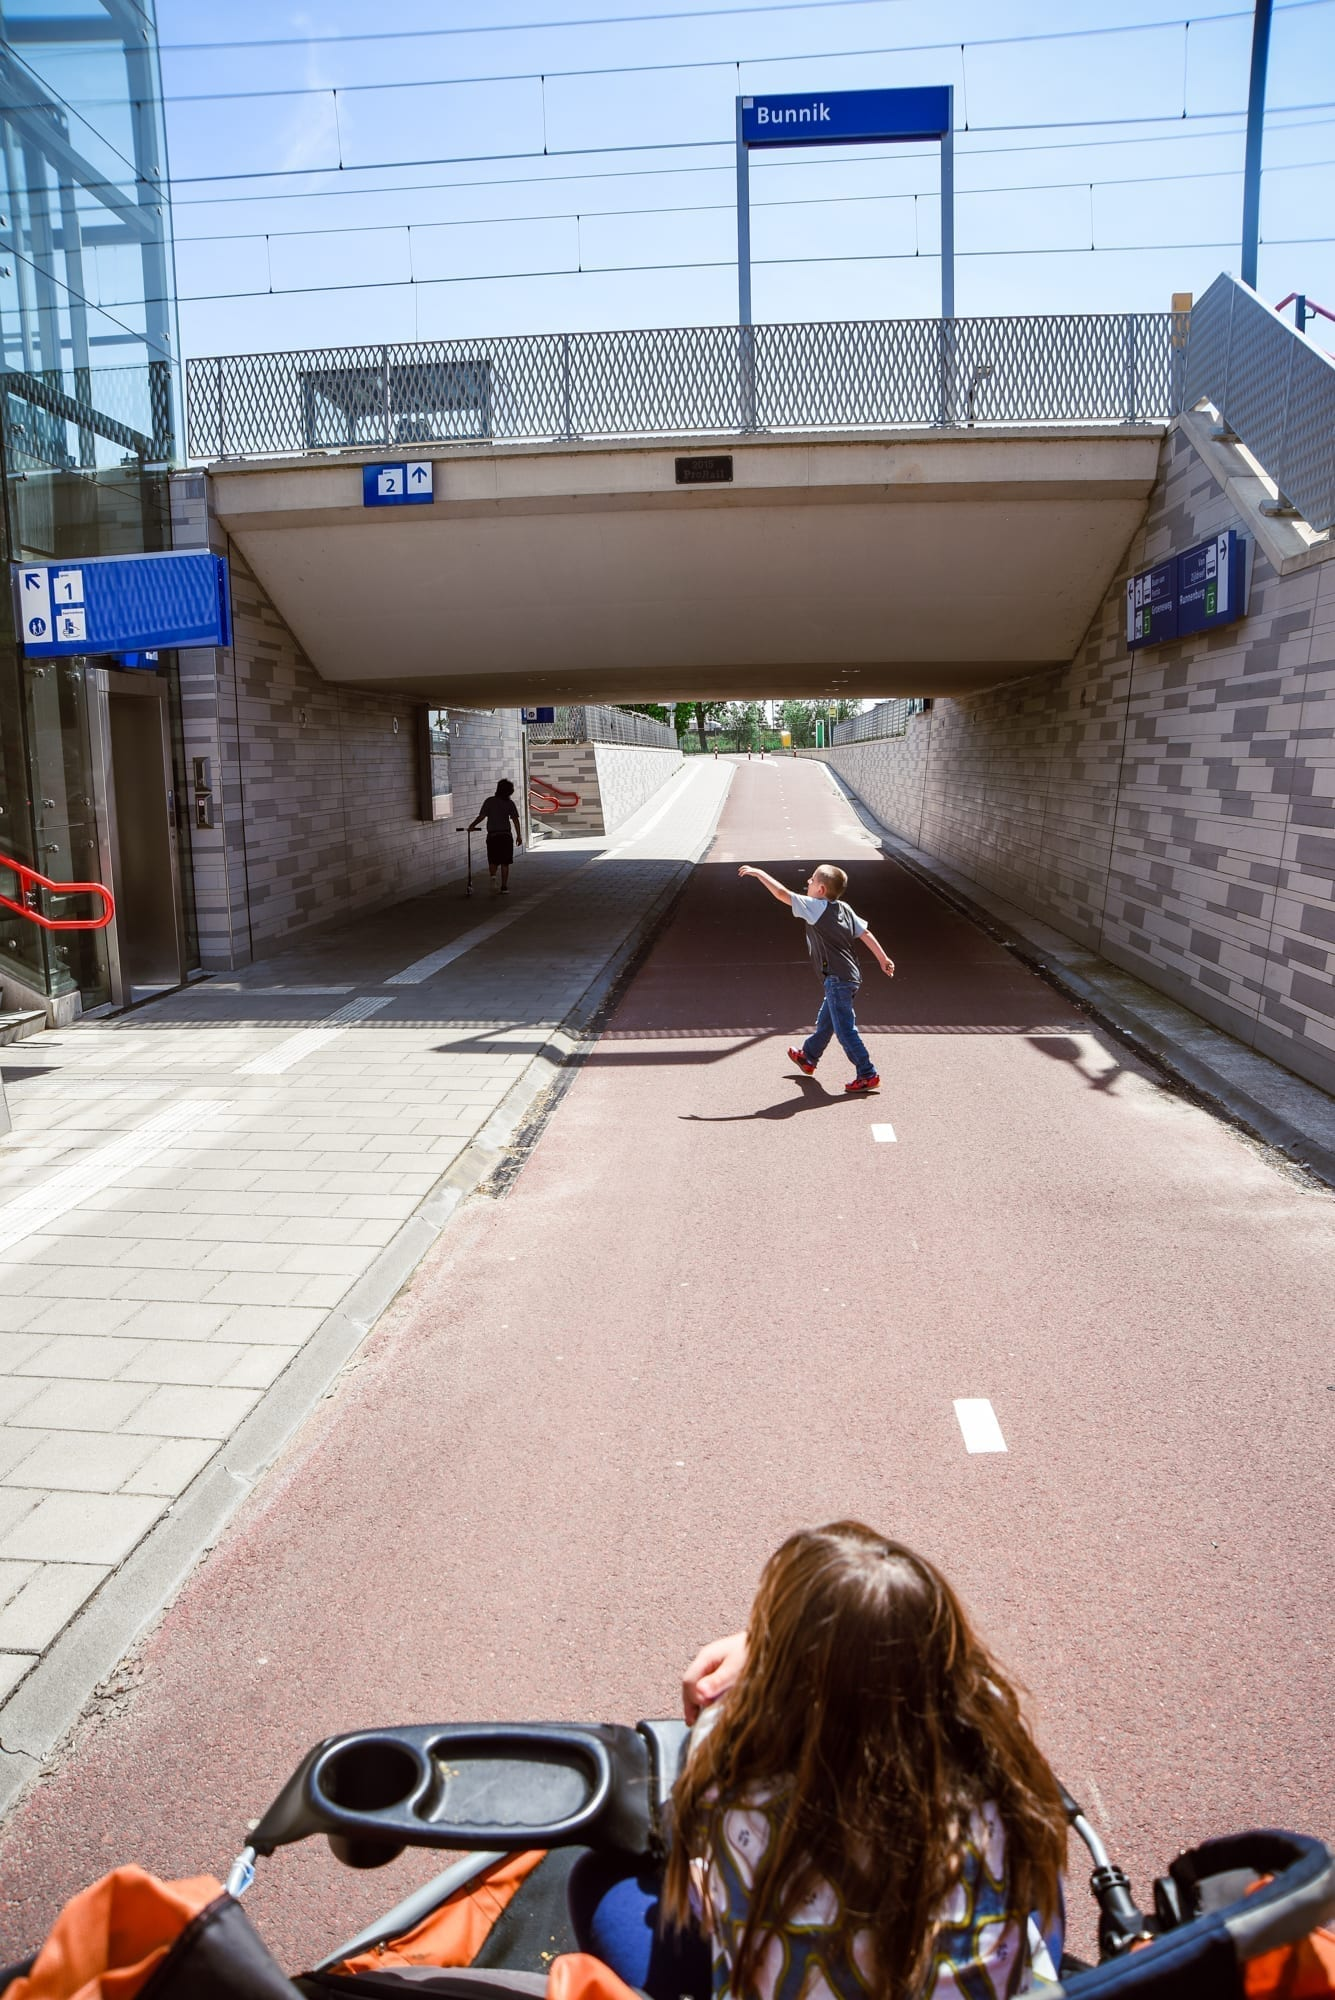 Bunnik train station in Holland - the road is accessible, the elevator is the left